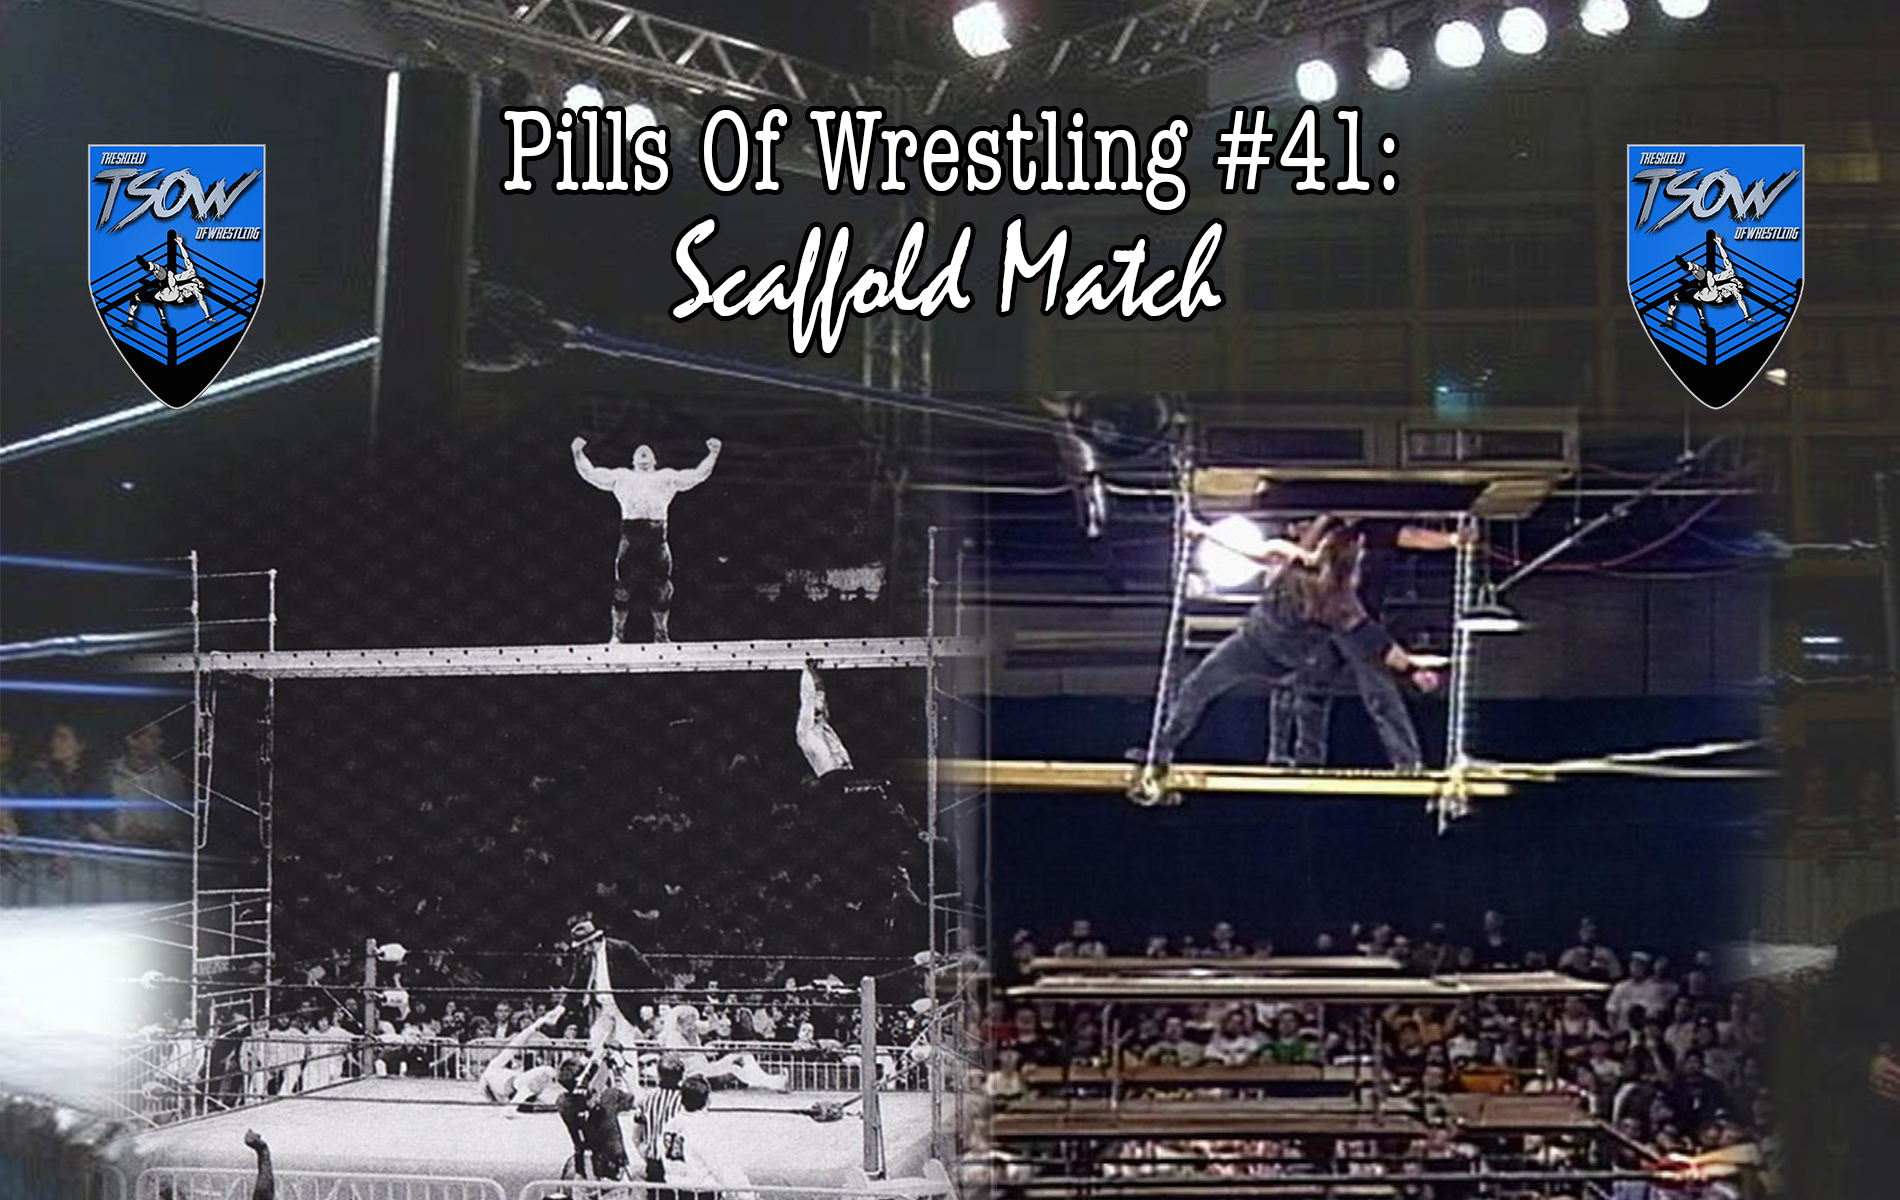 Pills Of Wrestling #41: Scaffold Match